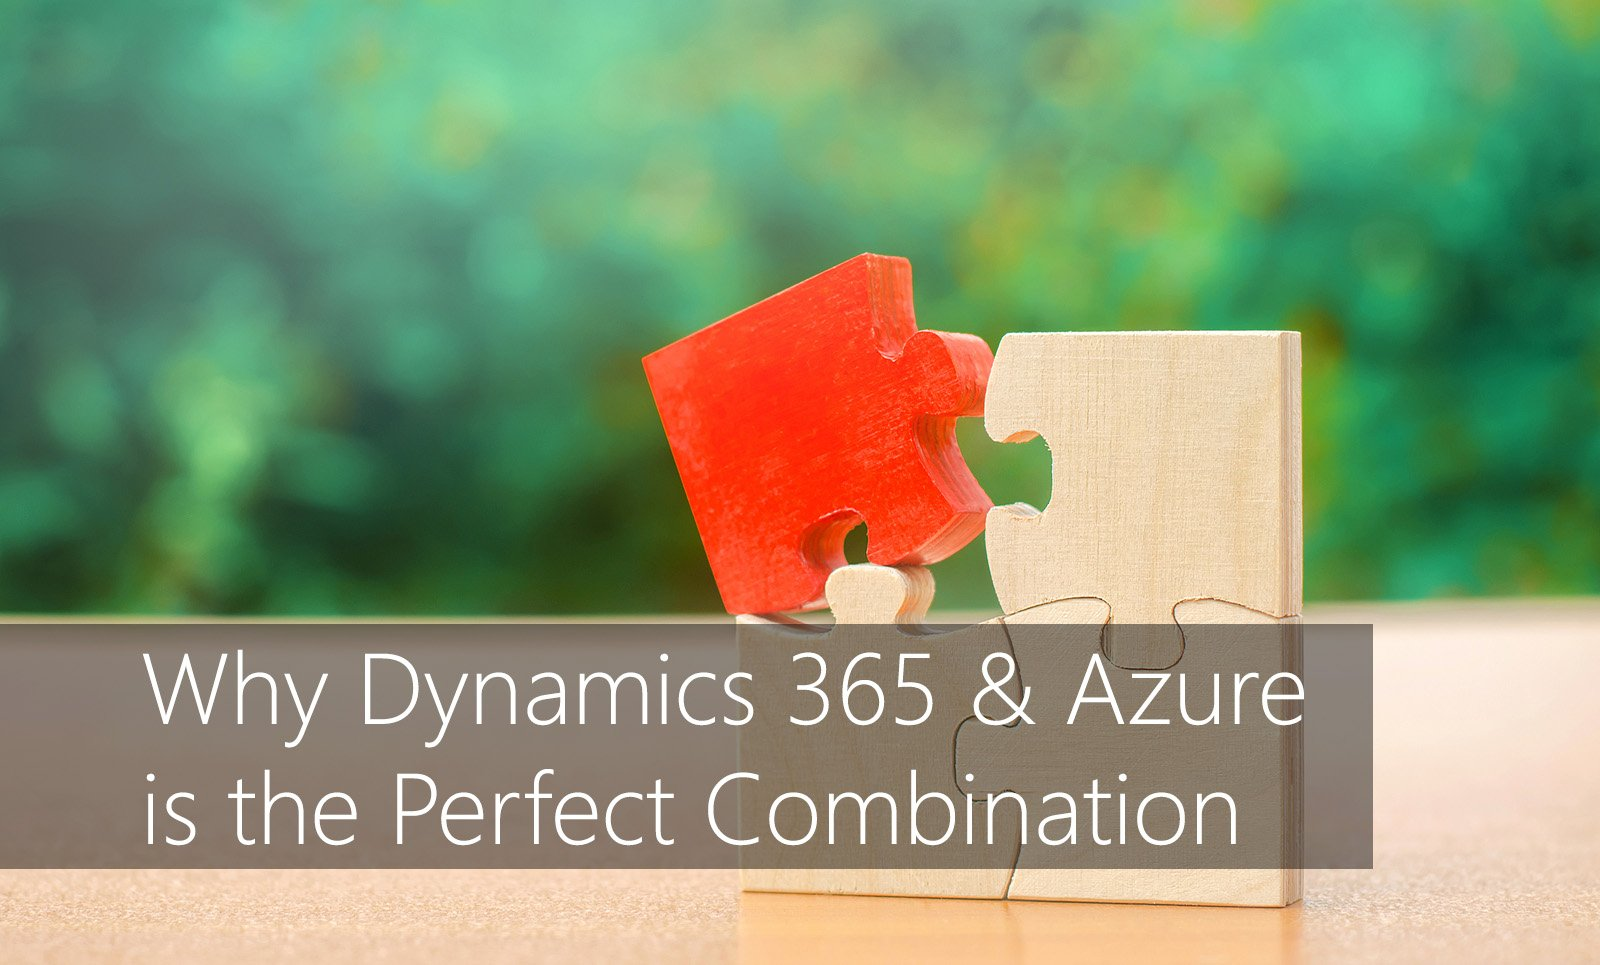 Why Dynamics 365 and Azure is the Perfect Combination